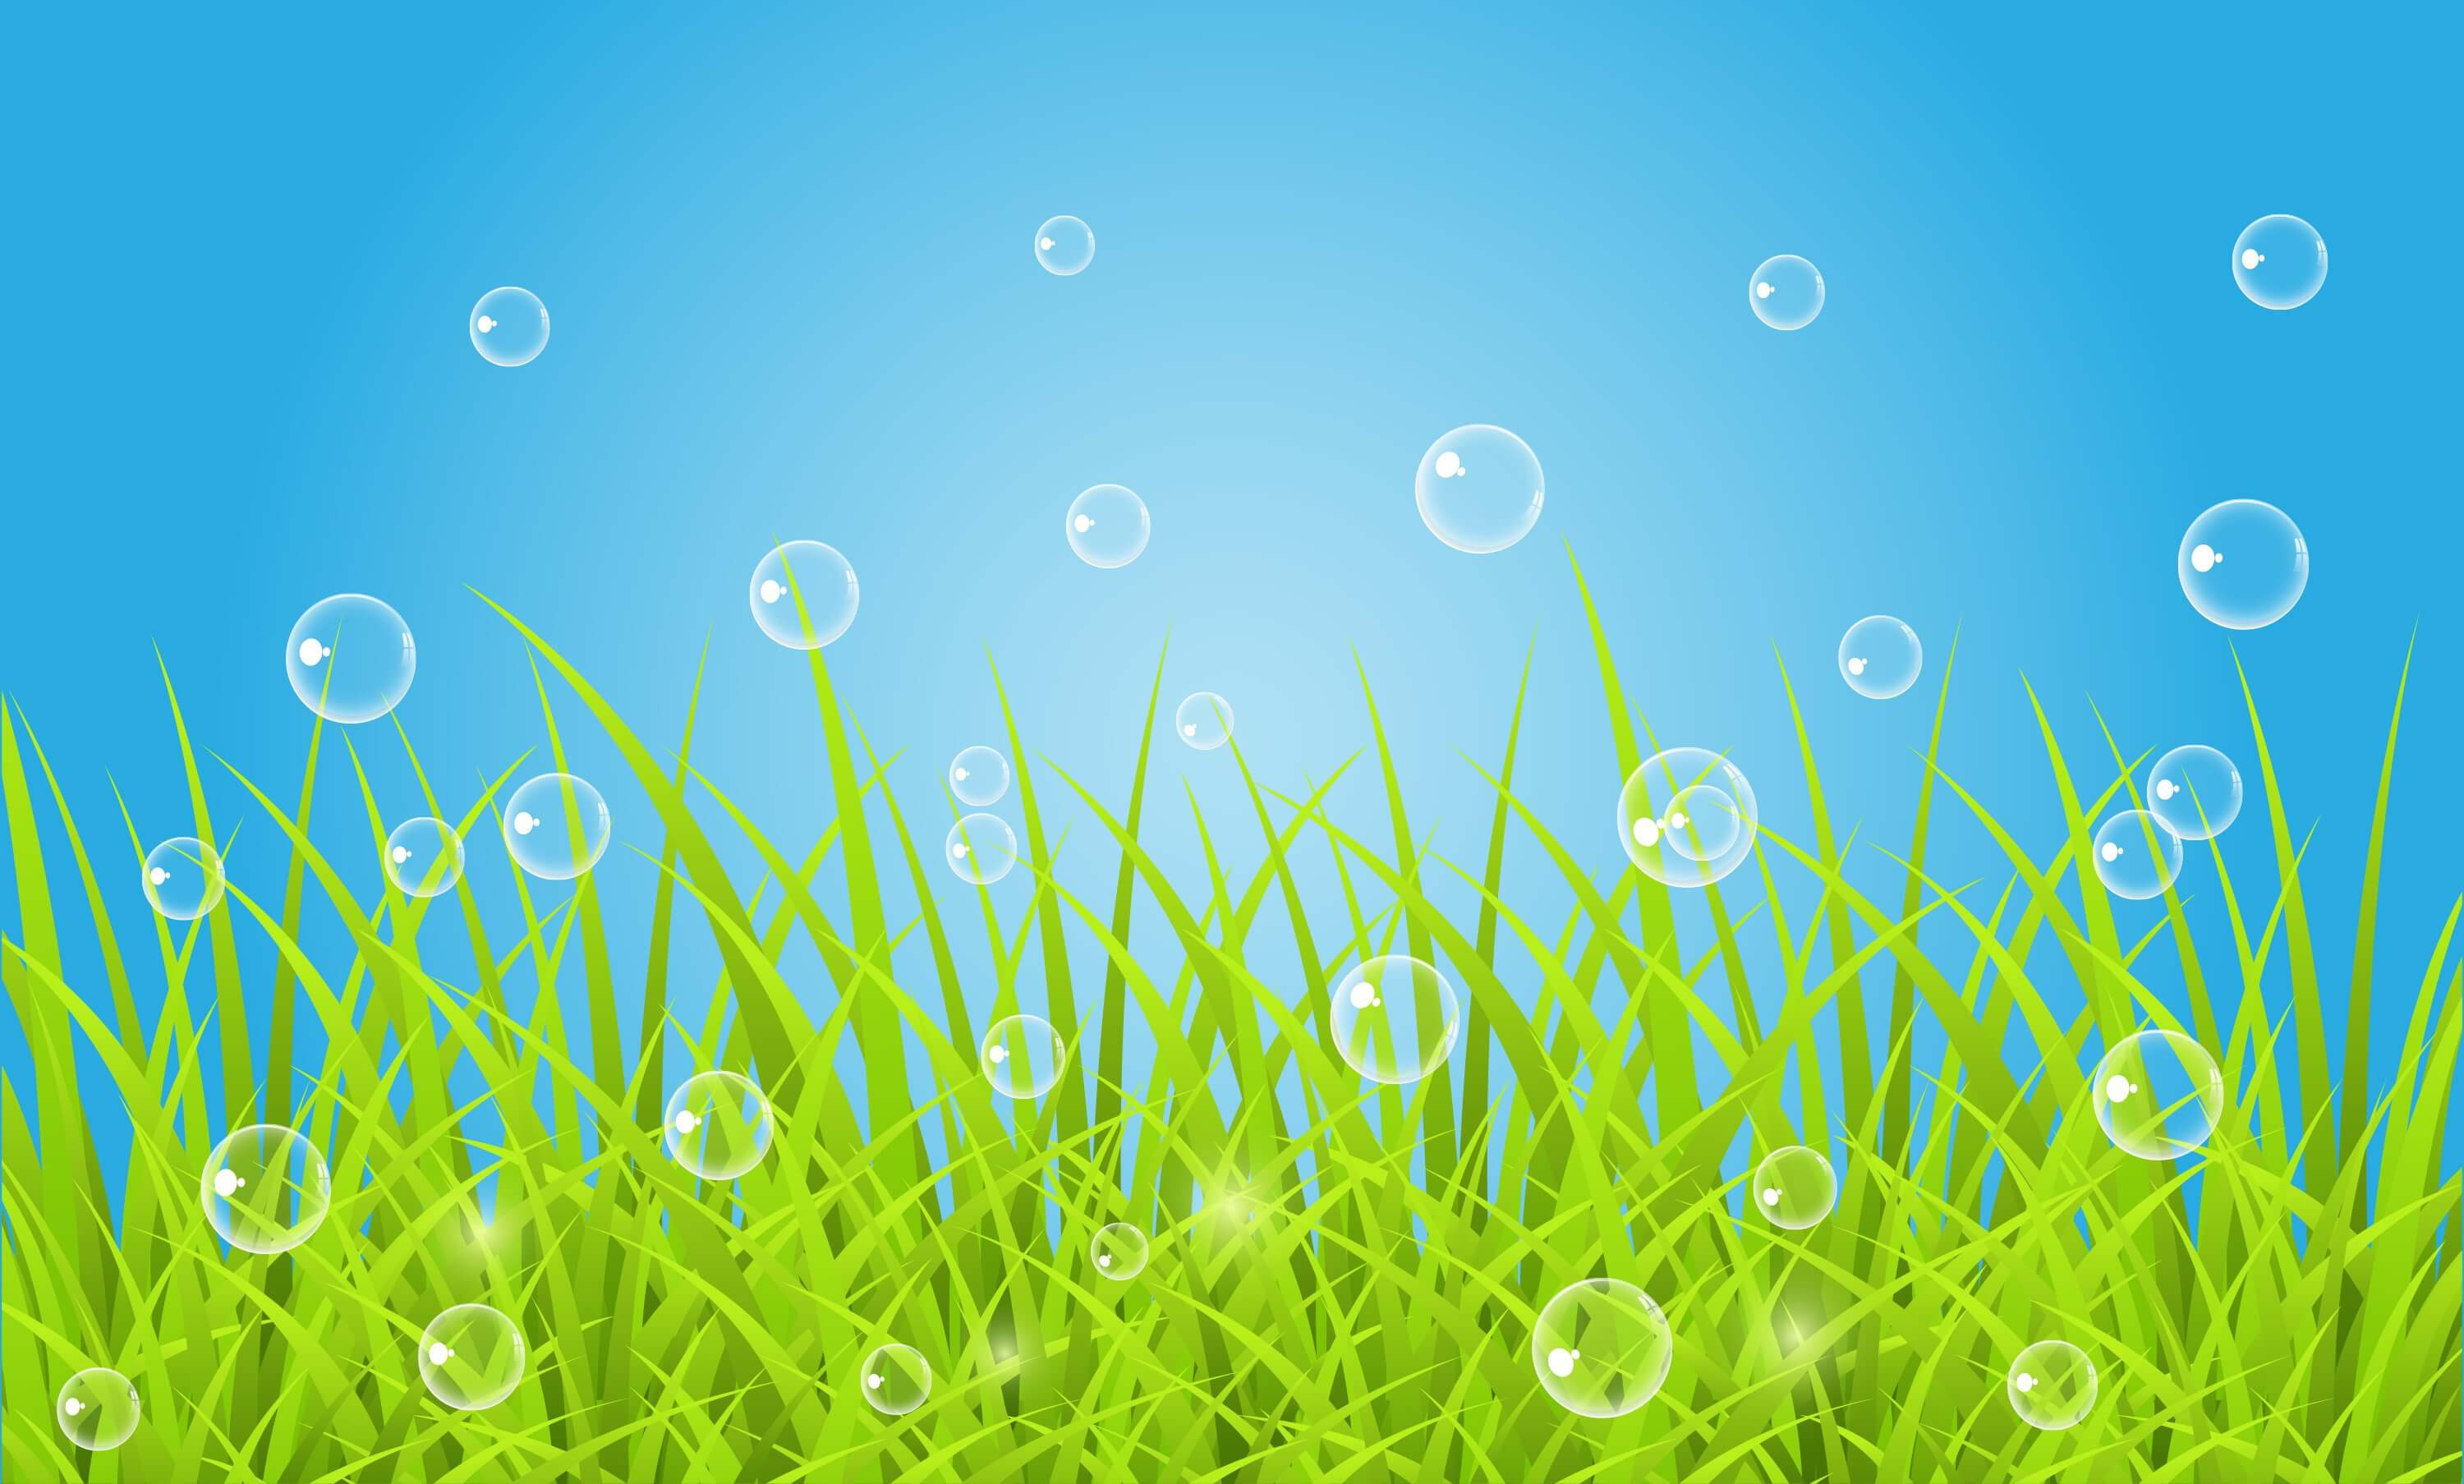 Bubbles above the Grass